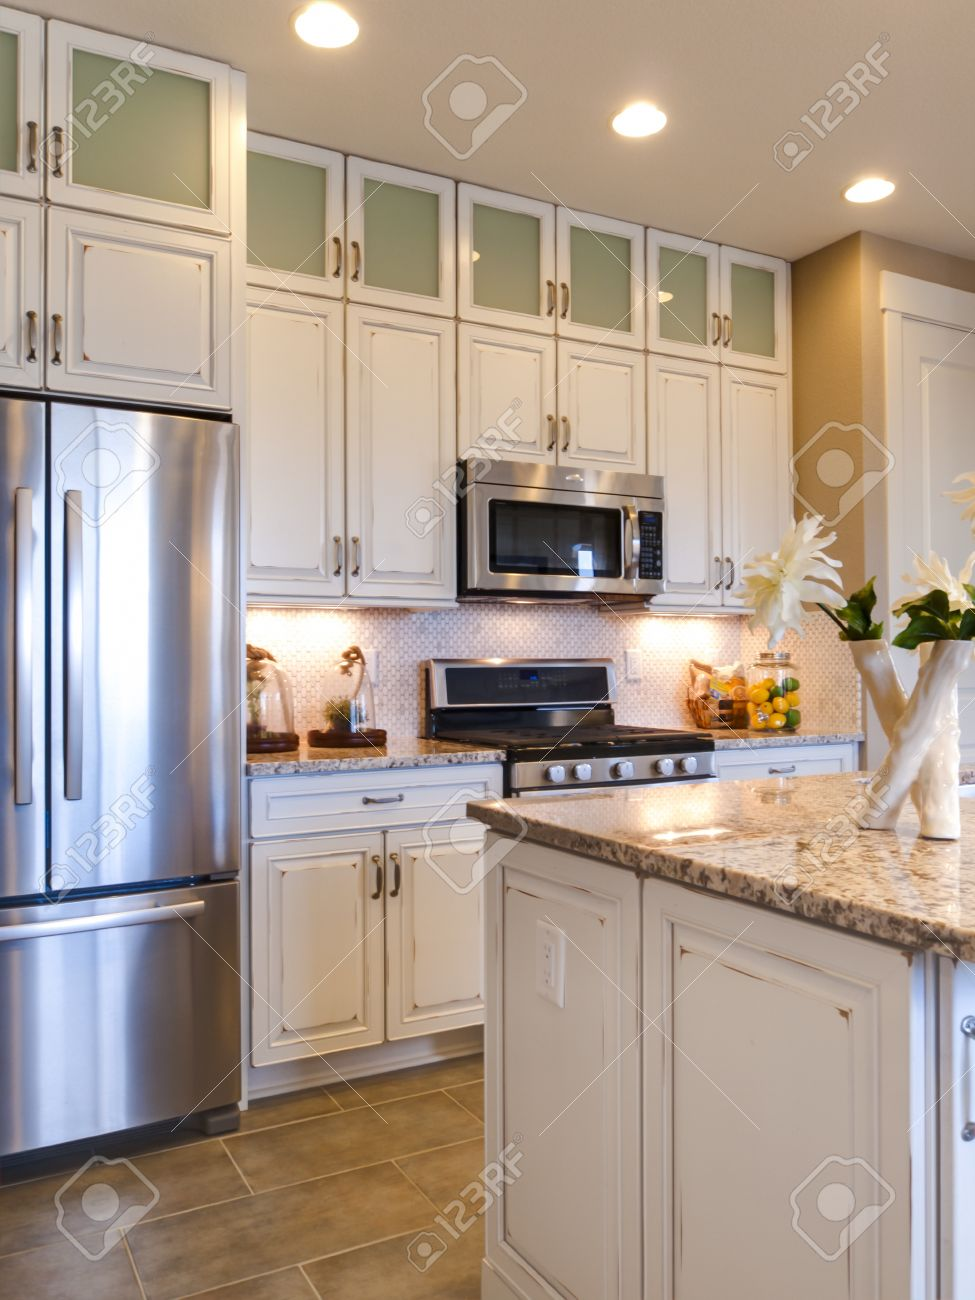 Modern Kitchen With White Cabinets And Stainless Appliances. Banco De  Imagens   15079413